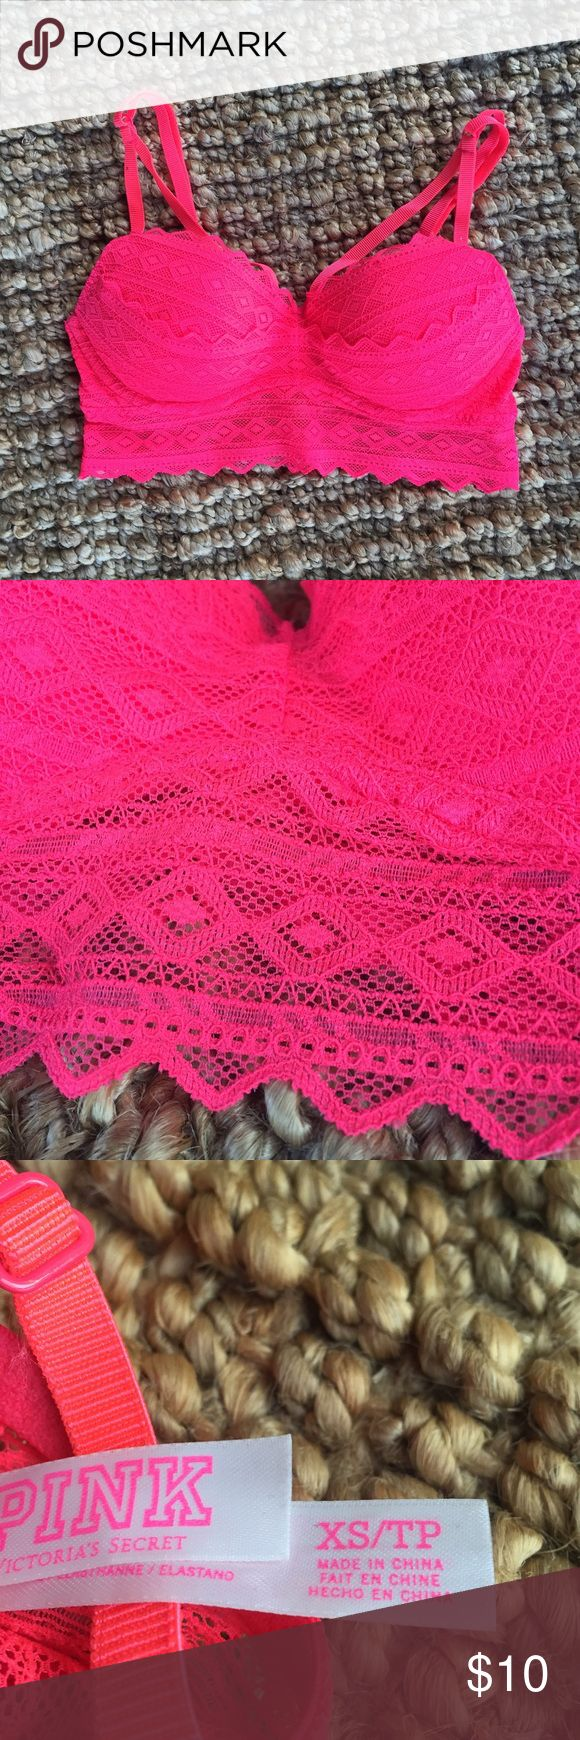 Victoria's Secret Padded Bralette This bralette is in brand new condition, it is too small for me. Has push up padding and looks so cute under big flowy tshirts!! Victoria's Secret Intimates & Sleepwear Bras